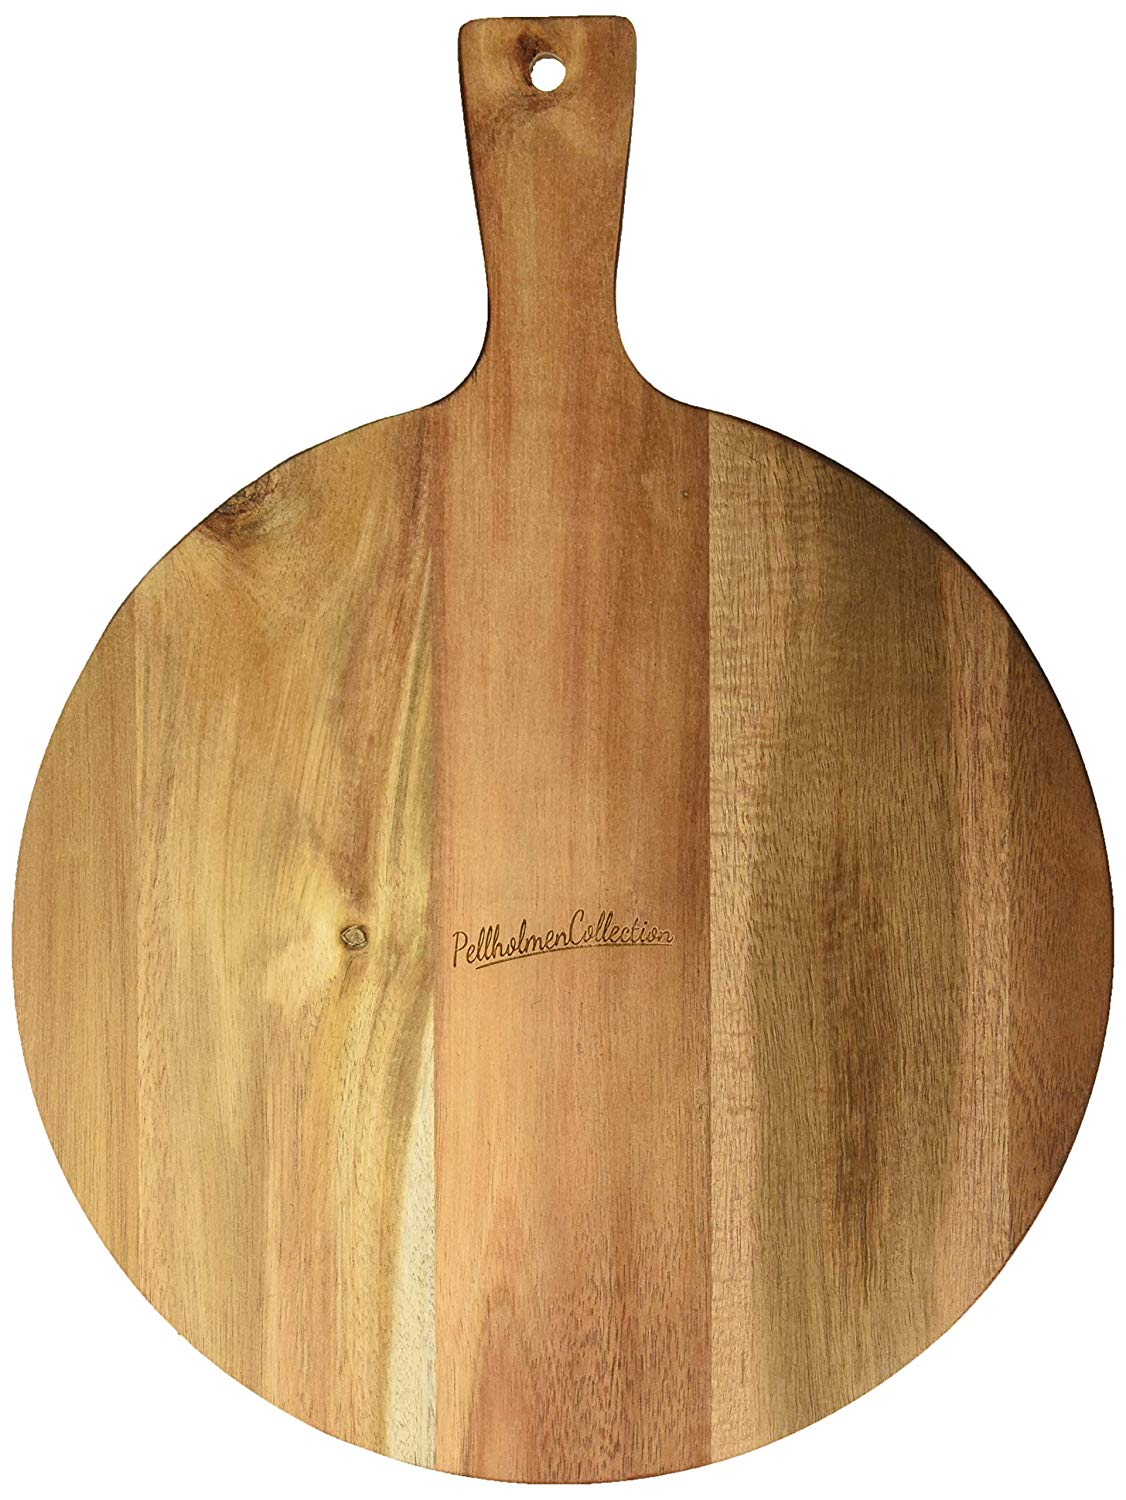 Authentic Acacia Cutting Board